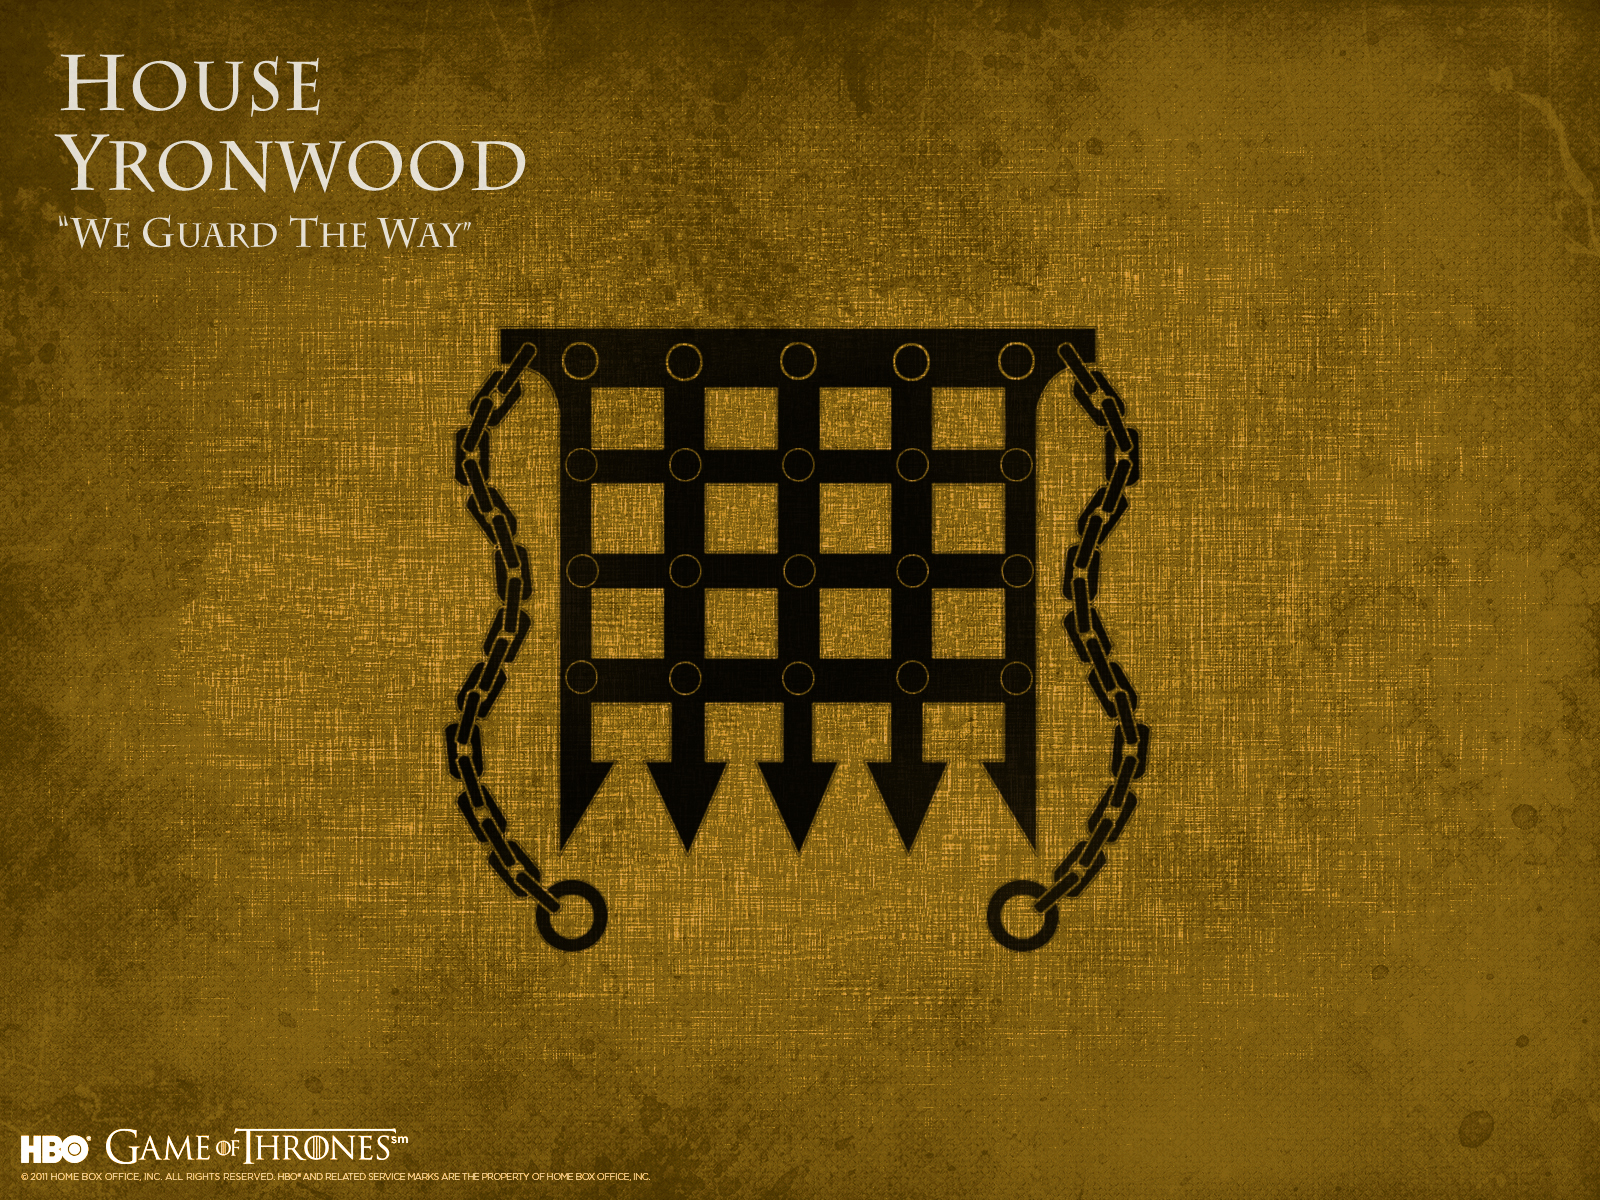 Game of thrones images house yronwood hd wallpaper and for Wallpaper with houses on it